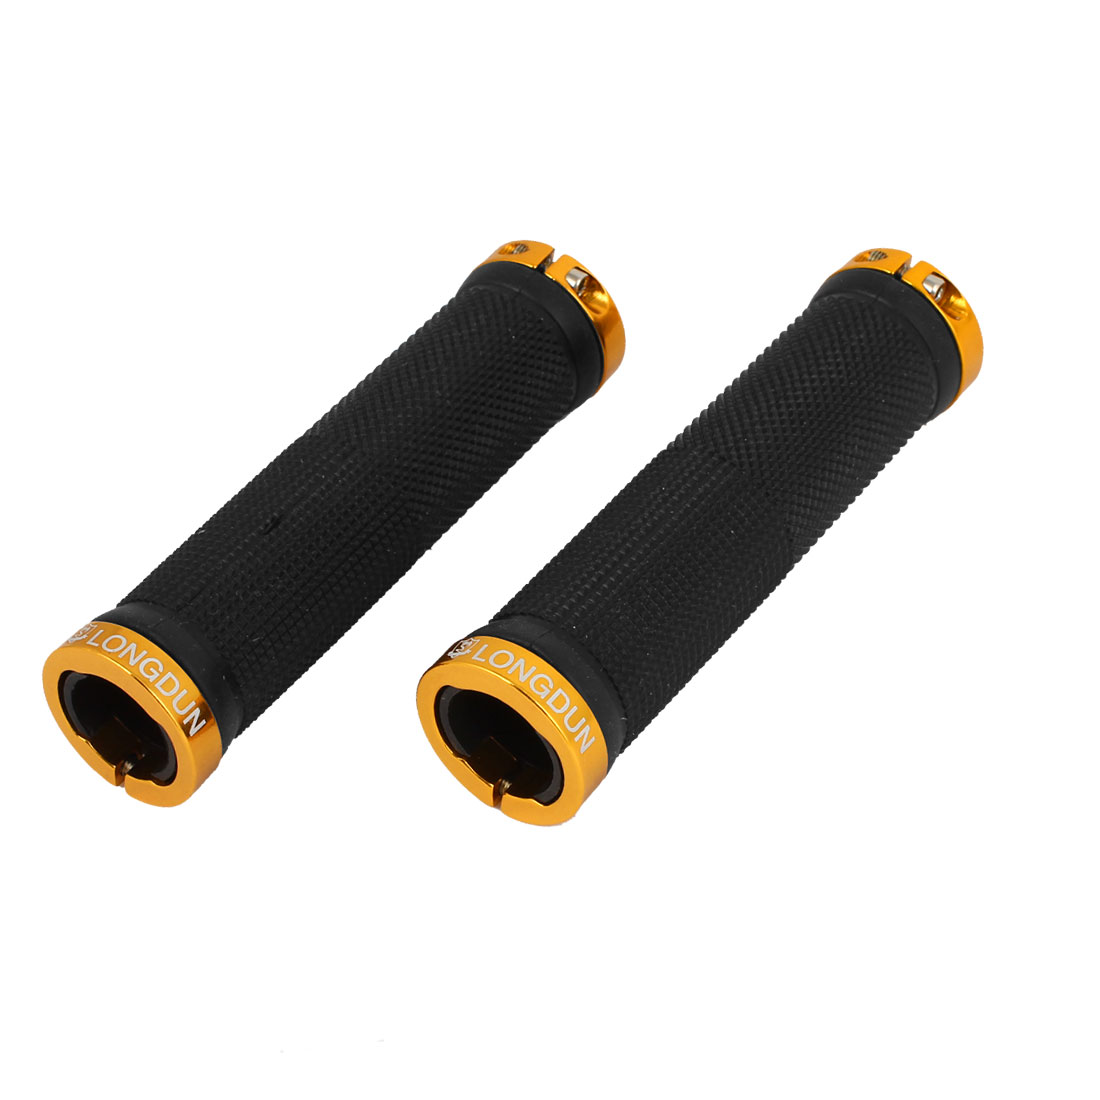 Pair Cycling Mountain Bike Nonslip Lock On Handlebar Grip Cover Black Gold Tone